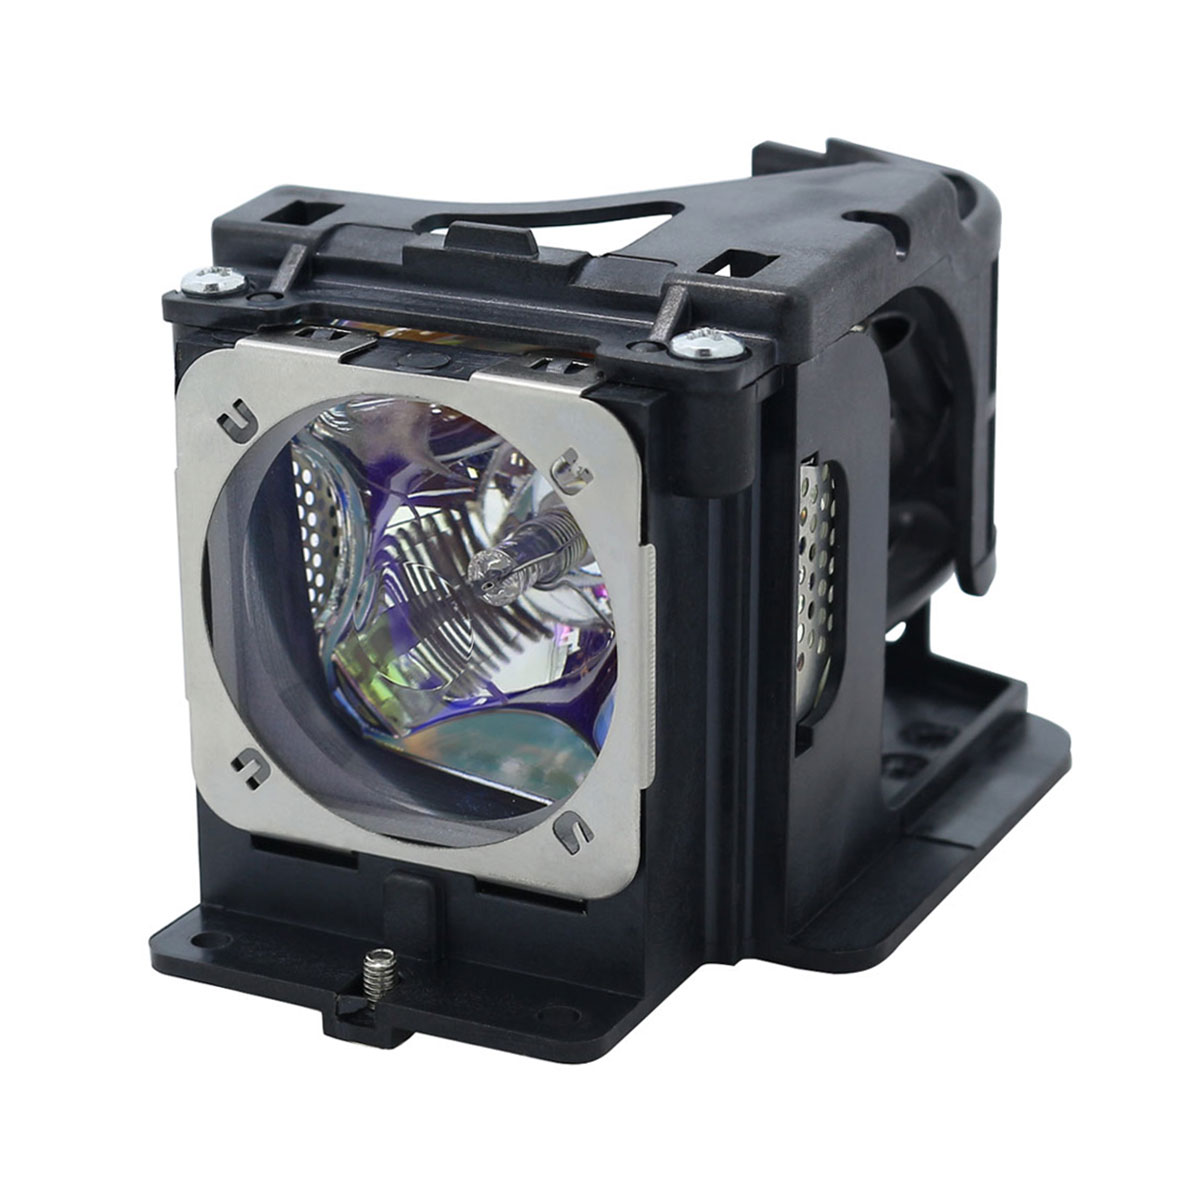 Lutema Platinum Bulb for Sanyo PLC-WXL46 Projector (Lamp Only) - image 5 of 5